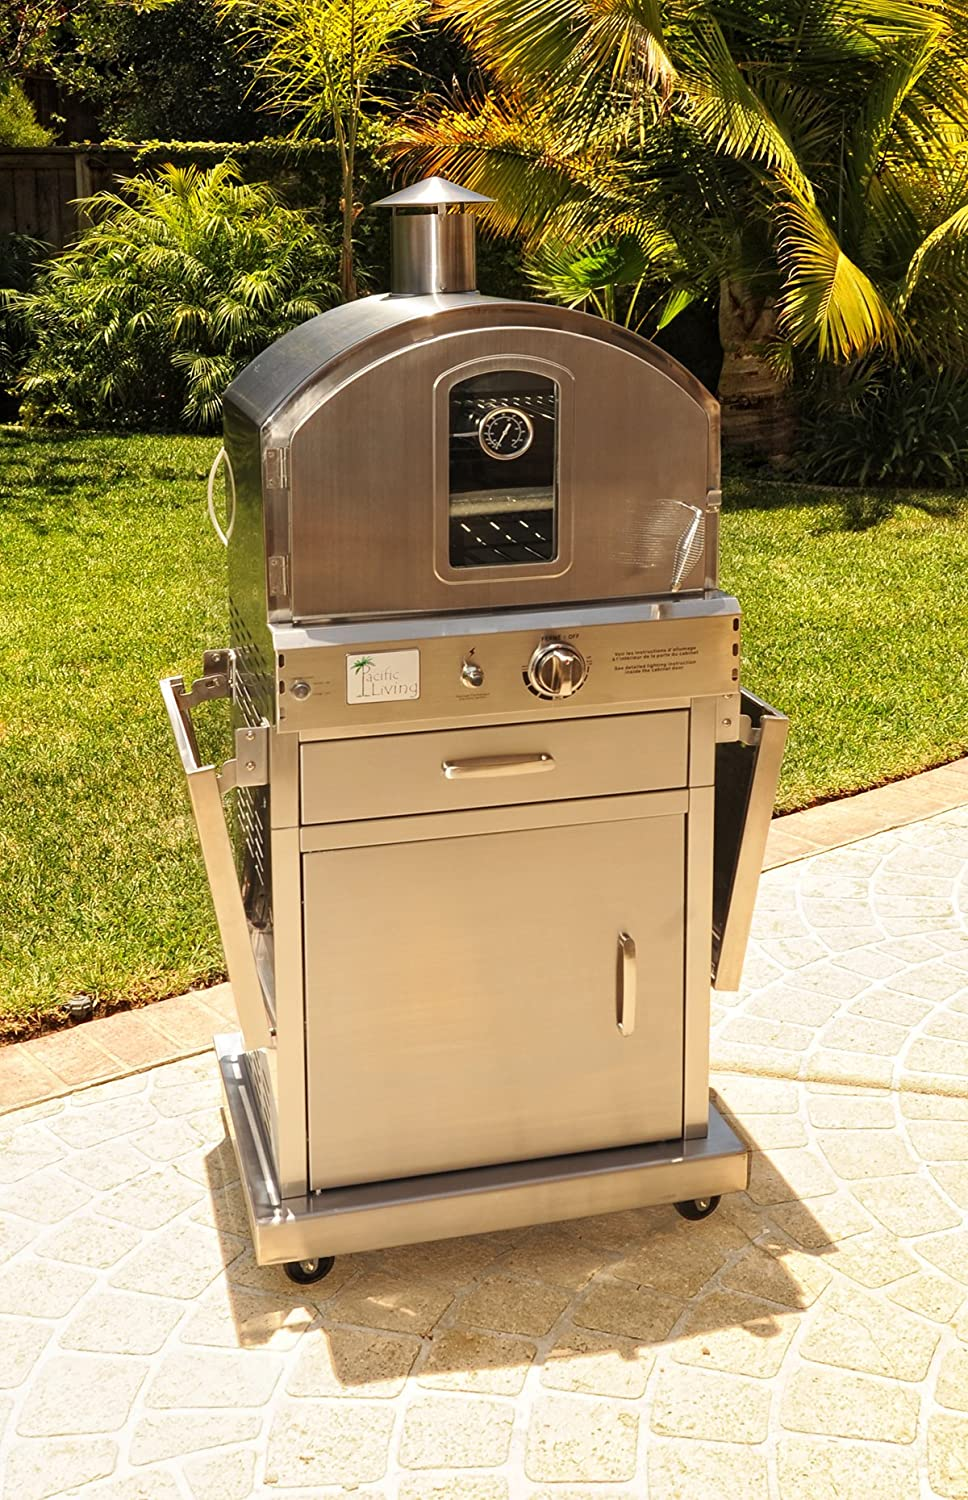 Pacific Living PL8430SSBG070 Outdoor Pizza Oven: Amazon.co.uk: Garden U0026  Outdoors